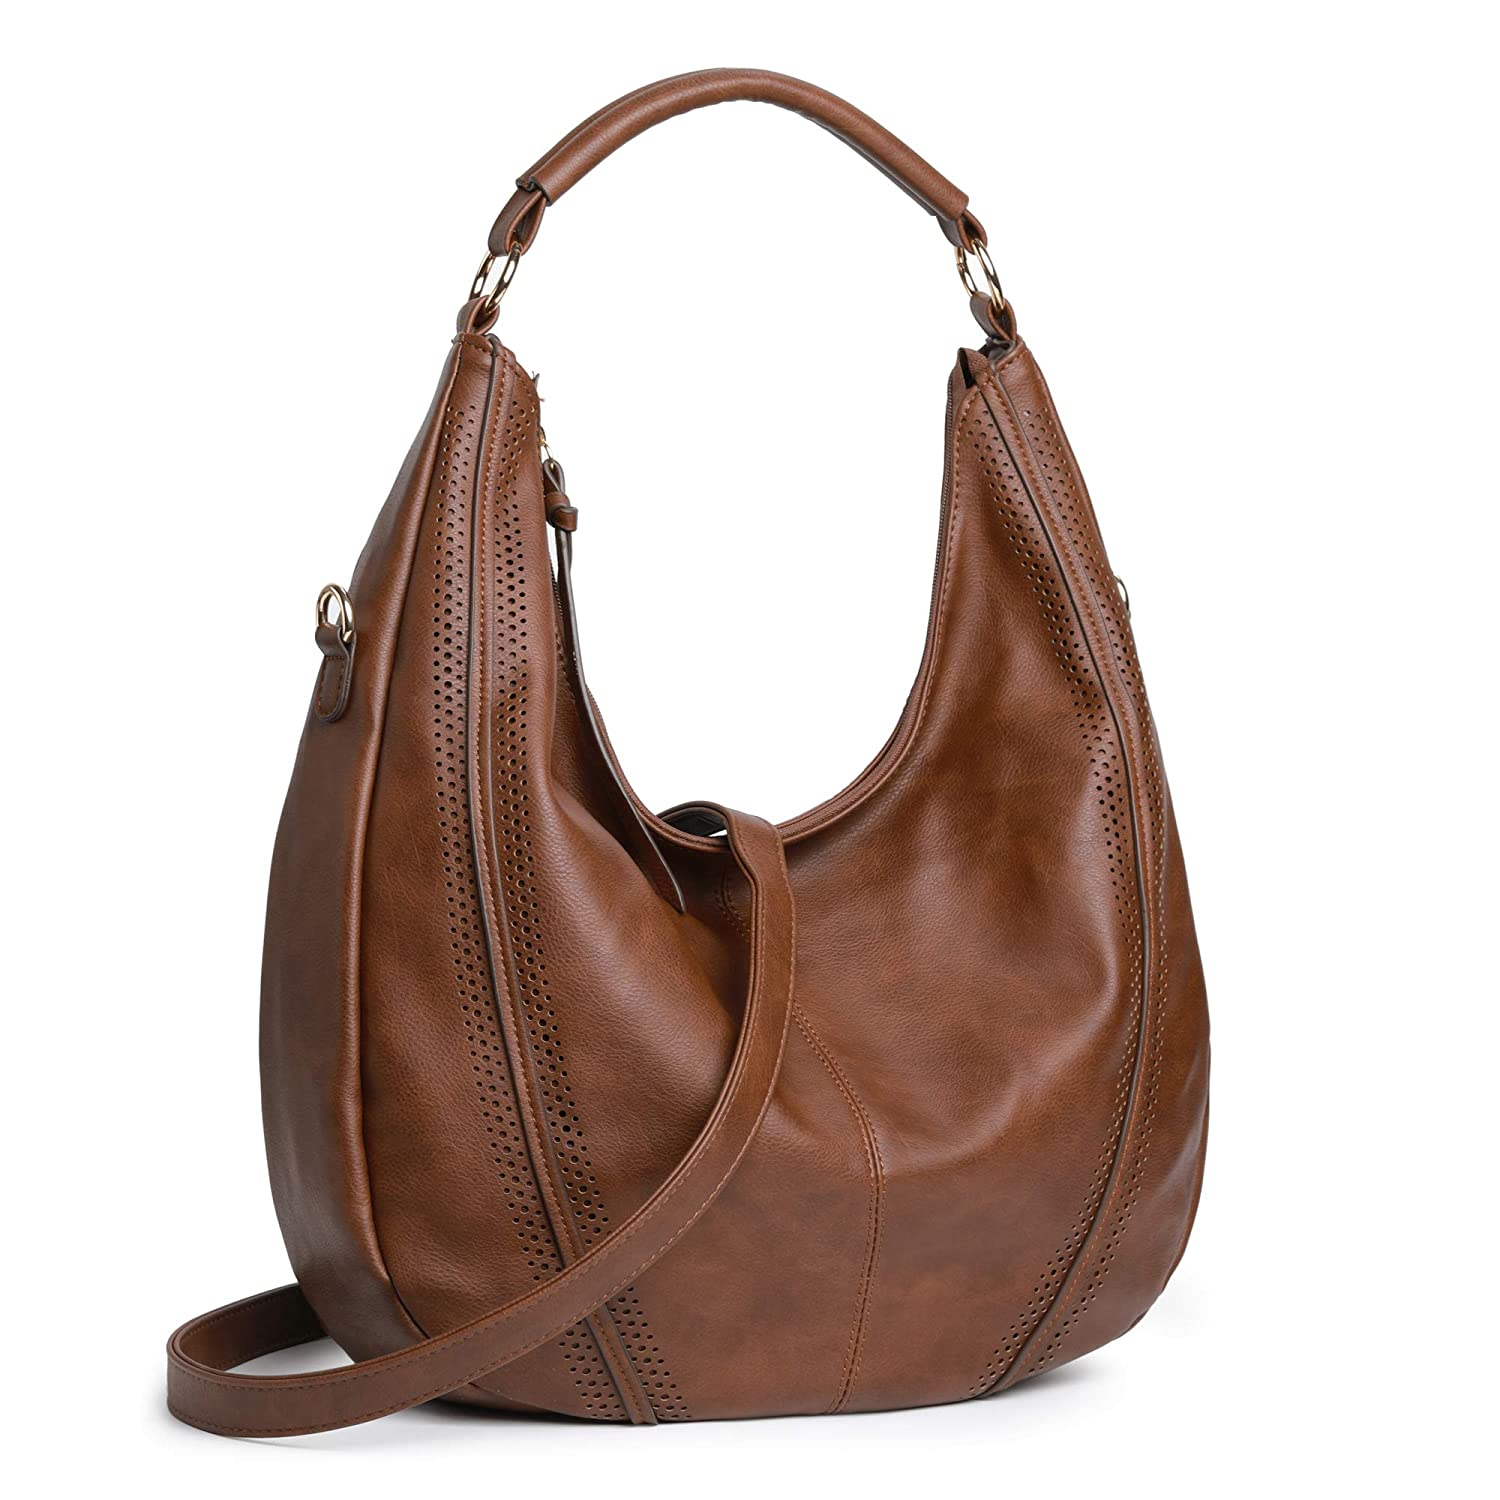 Women Hobo Bags Oversized Leather Purse Handbags PU Crossbody Shoulder Totes Winter Stylish Purses